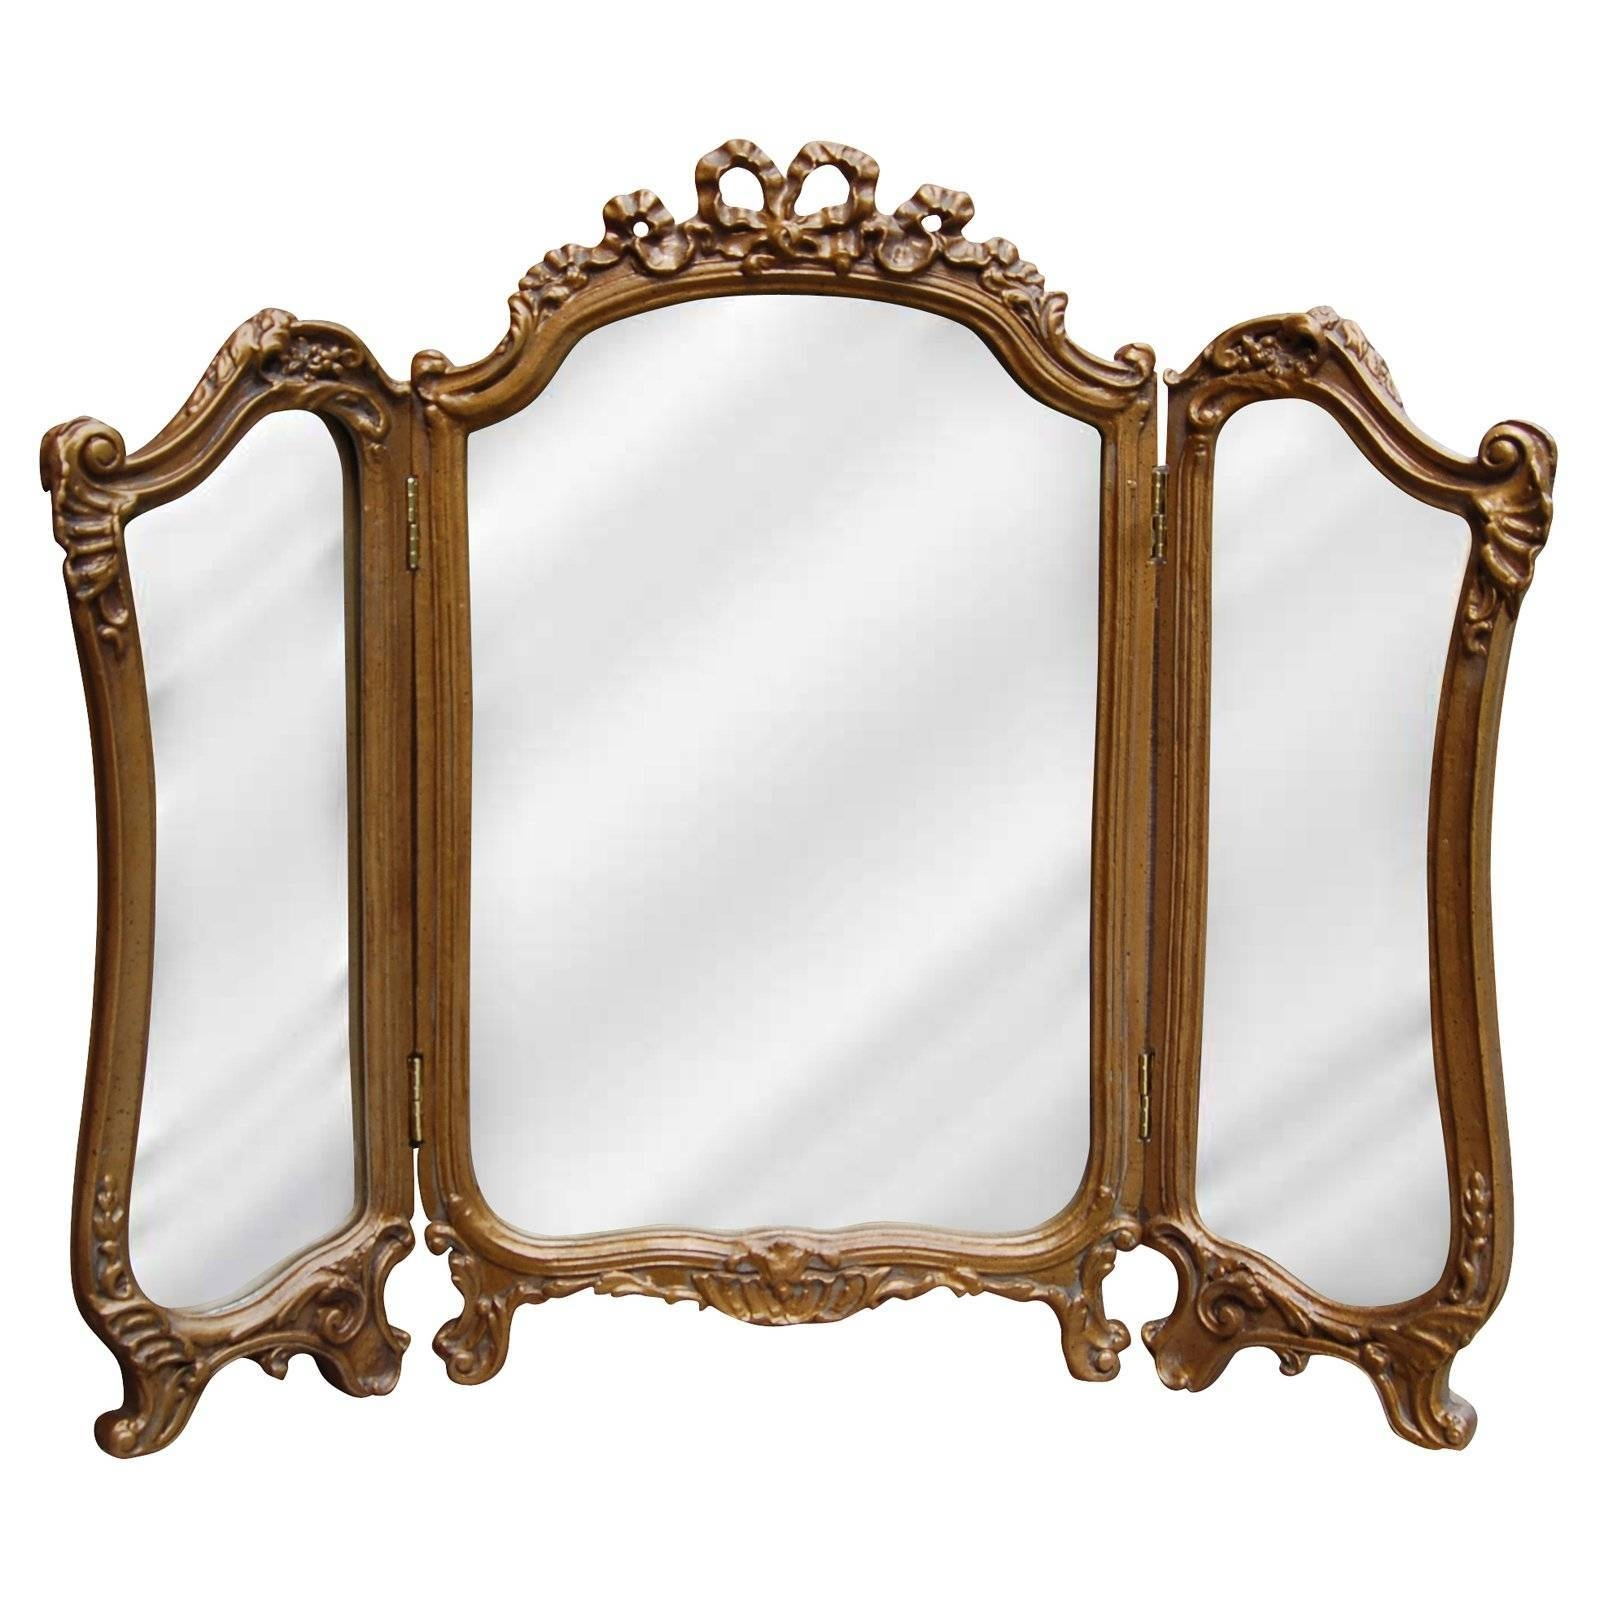 Mirror : Amish Full Length Victorian Style Floor Mirror Inside regarding Victorian Style Mirrors (Image 8 of 15)